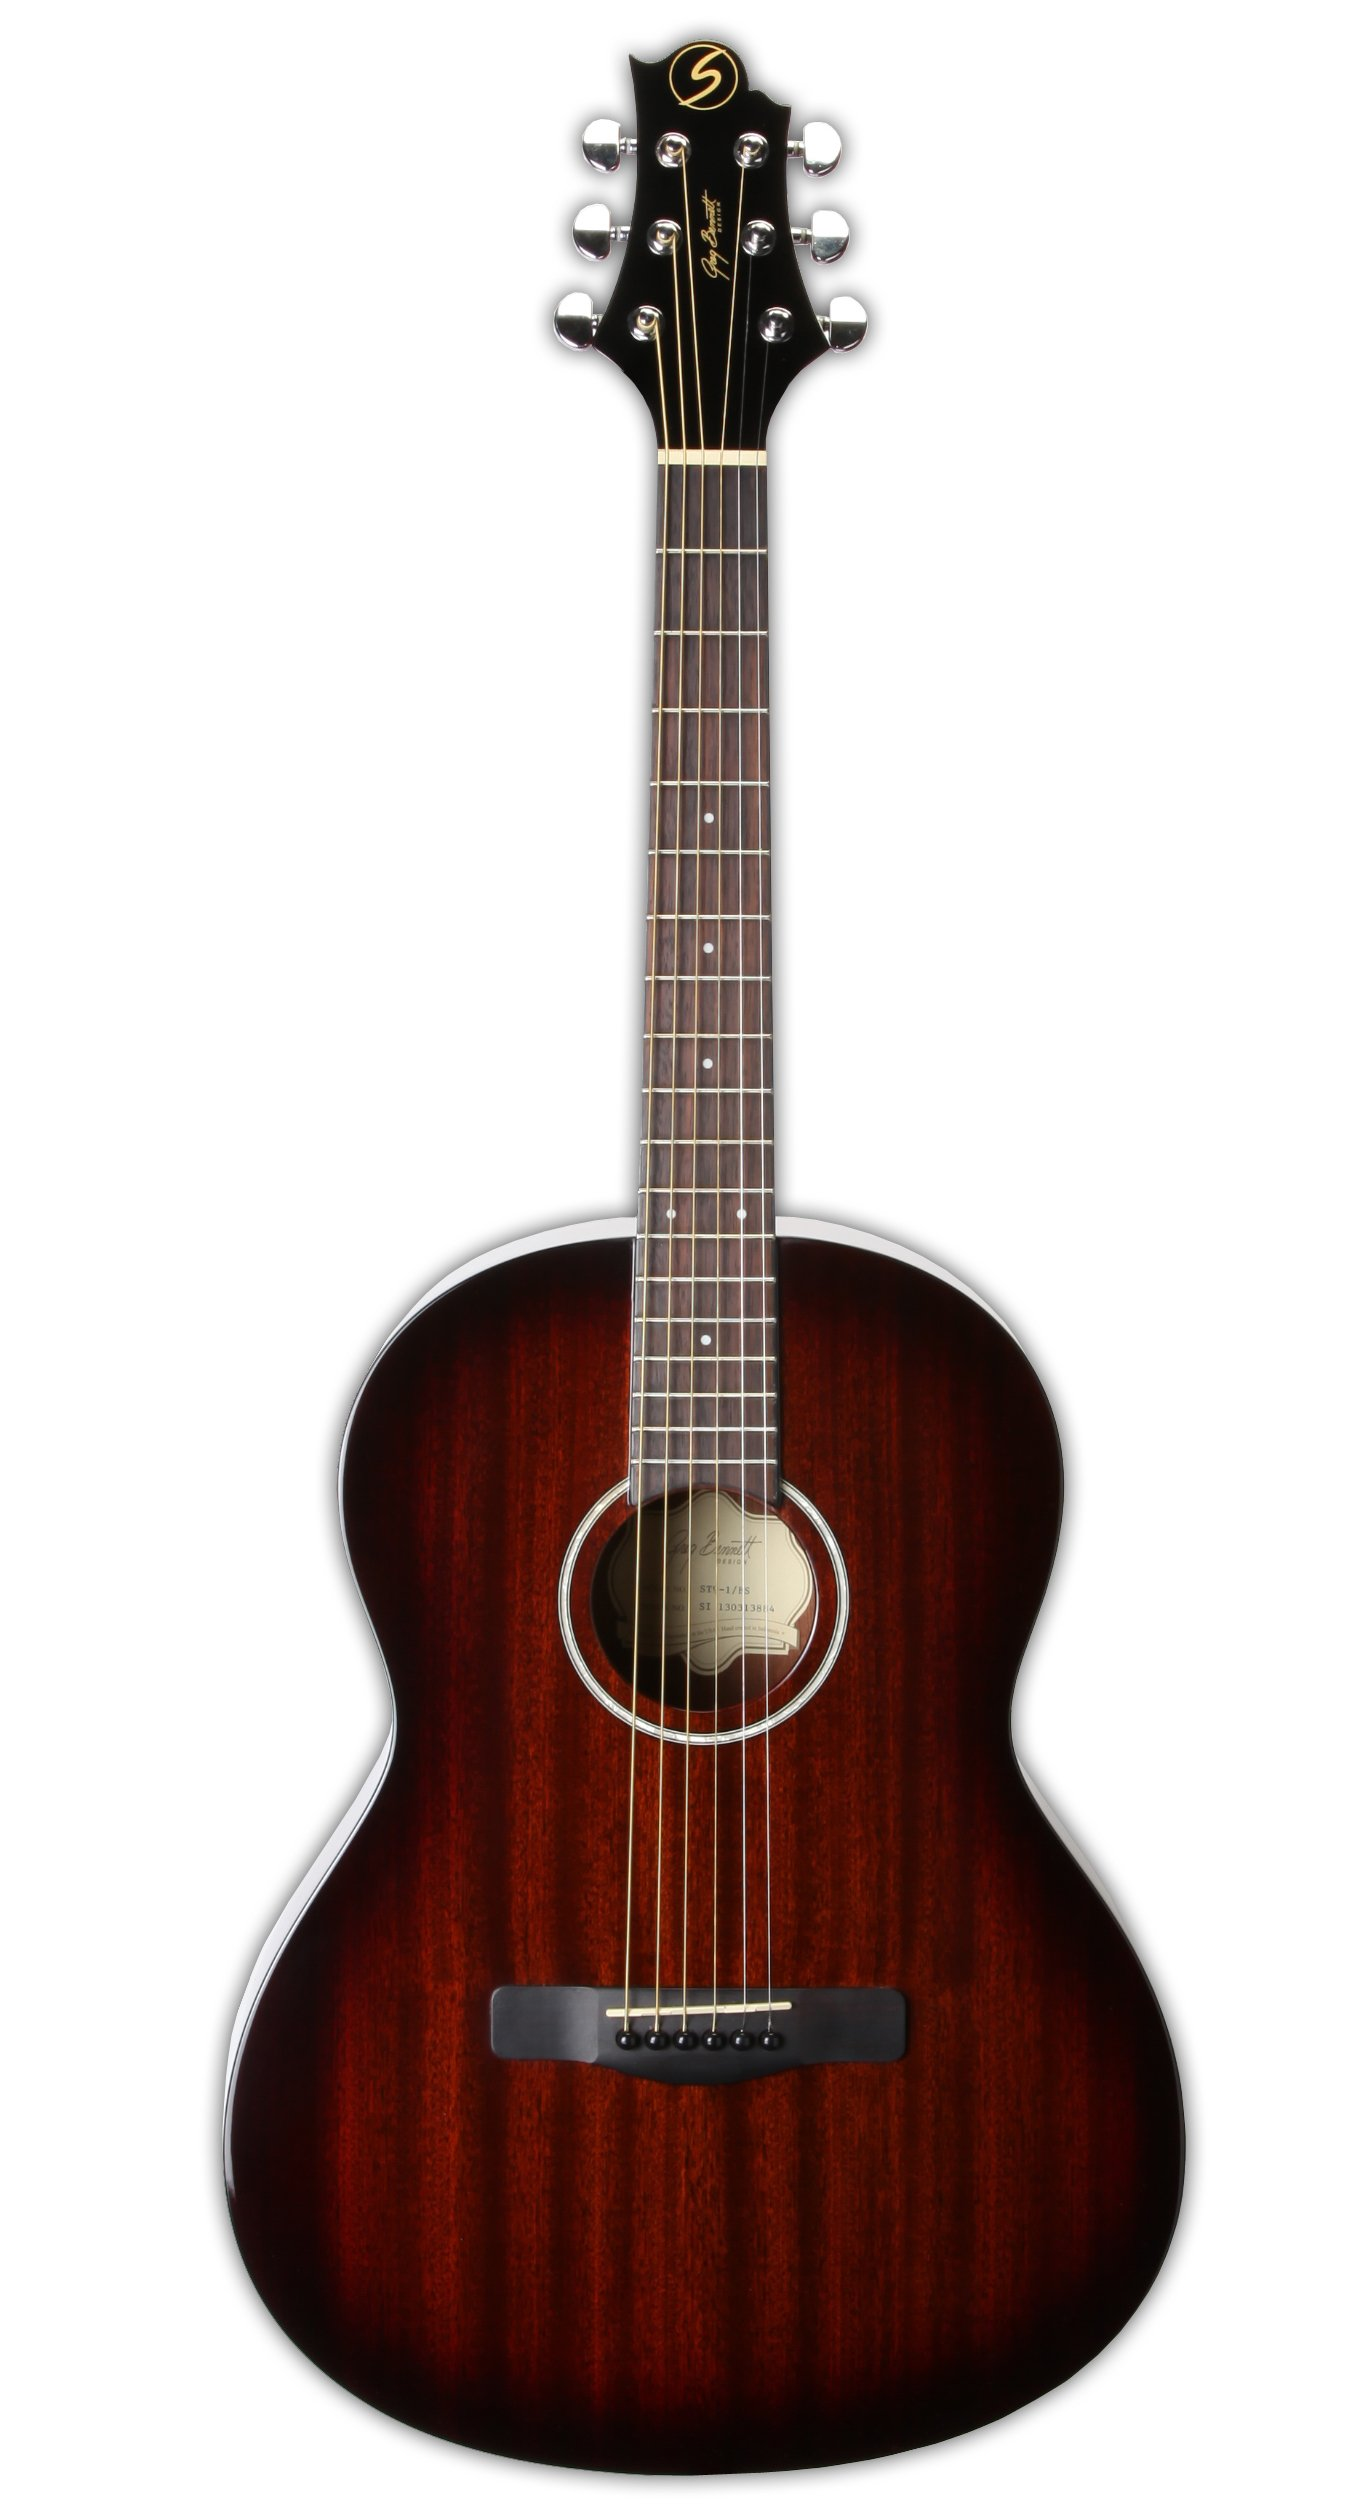 Greg Bennett Design Gold rush ST91 BS 39-Inch Folk Acoustic Guitar, Brown sunburst by Greg Bennett Design